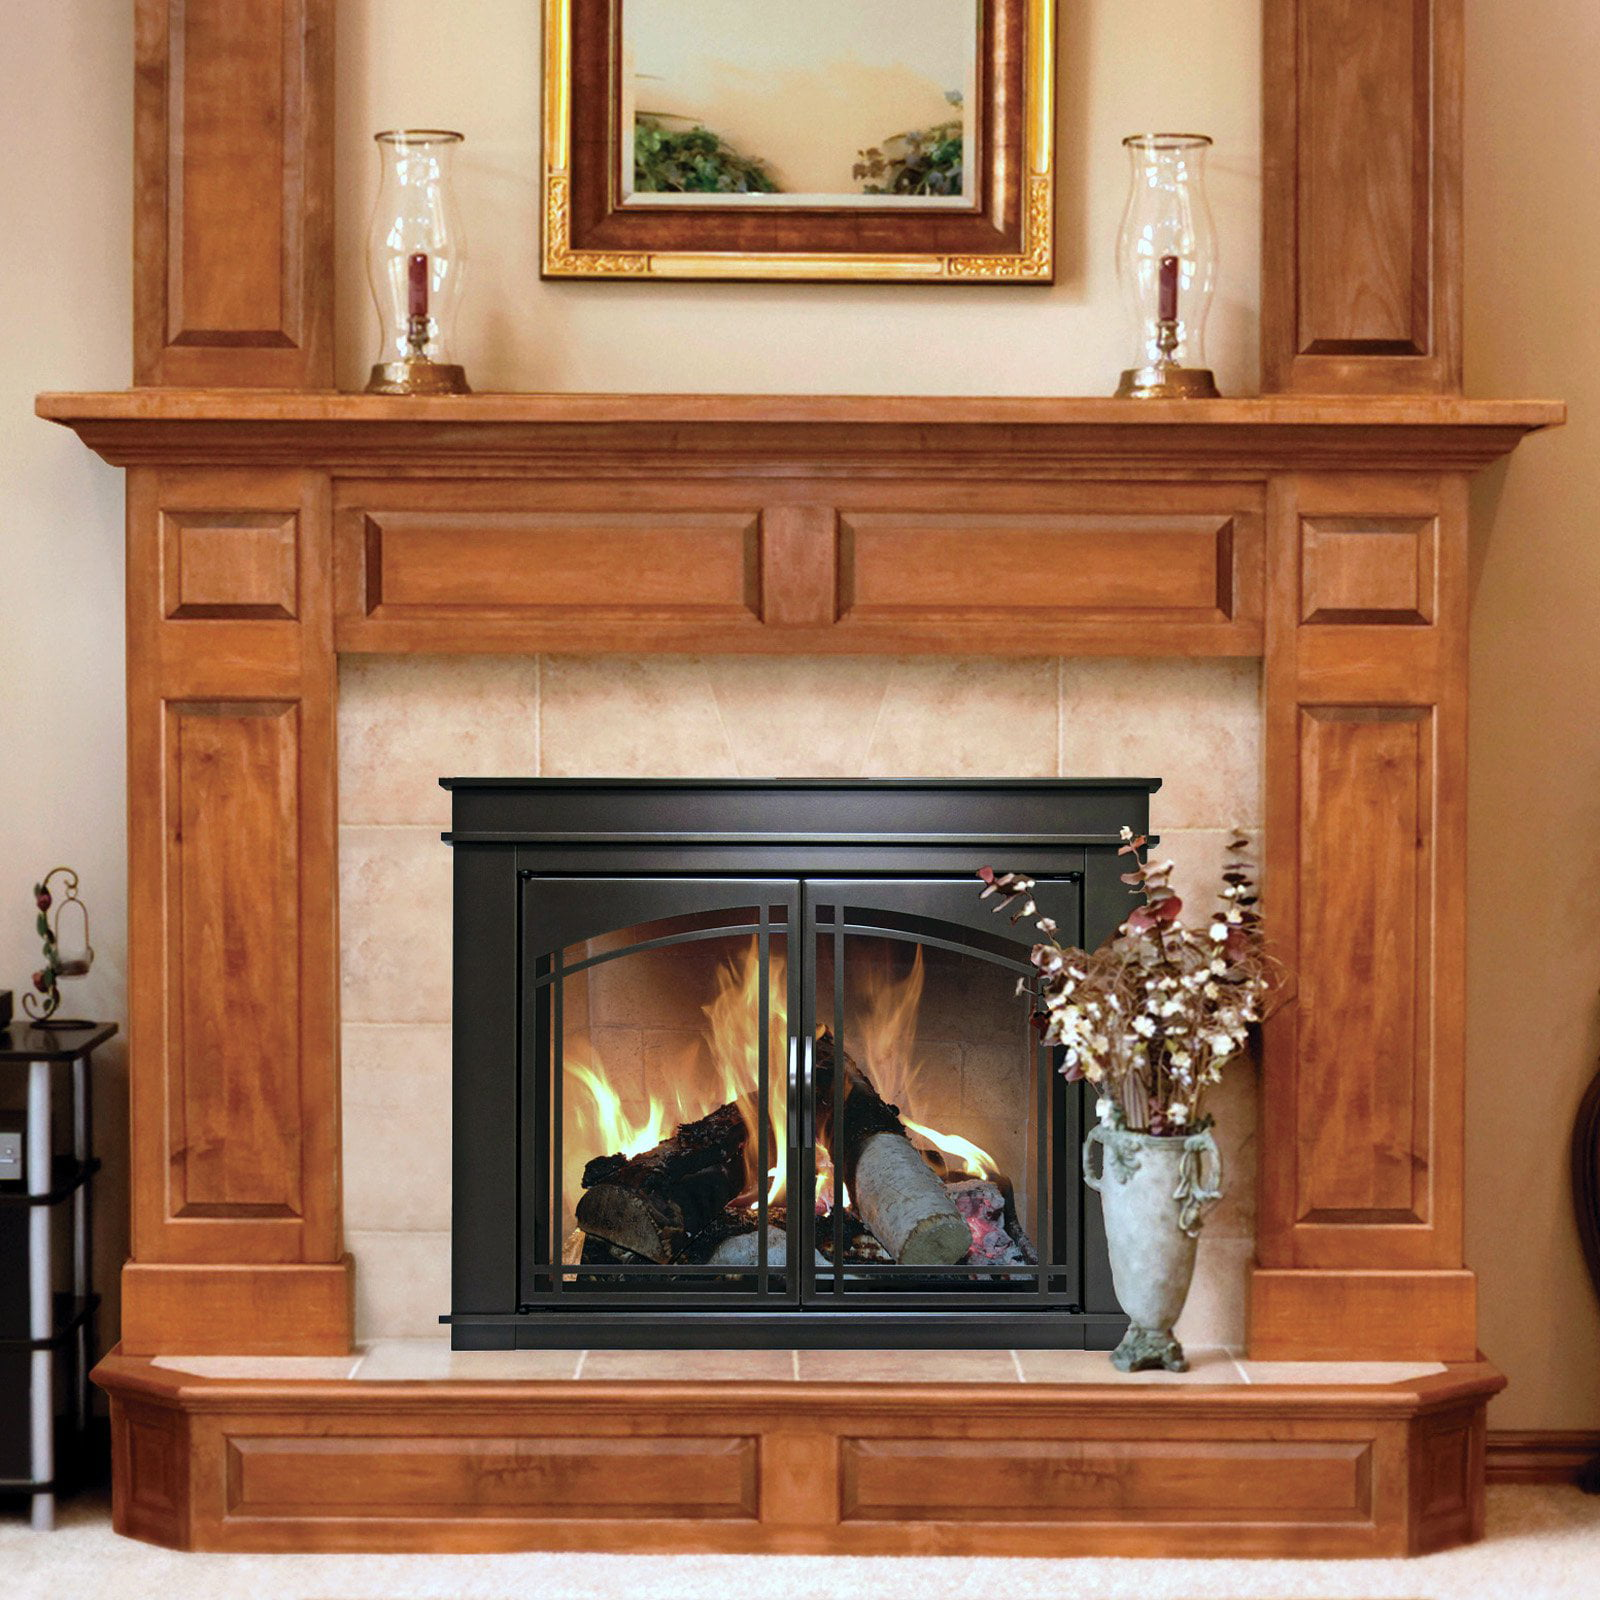 Pleasant Hearth Fenwick Cabinet Fireplace Screen and Arch Prairie ...